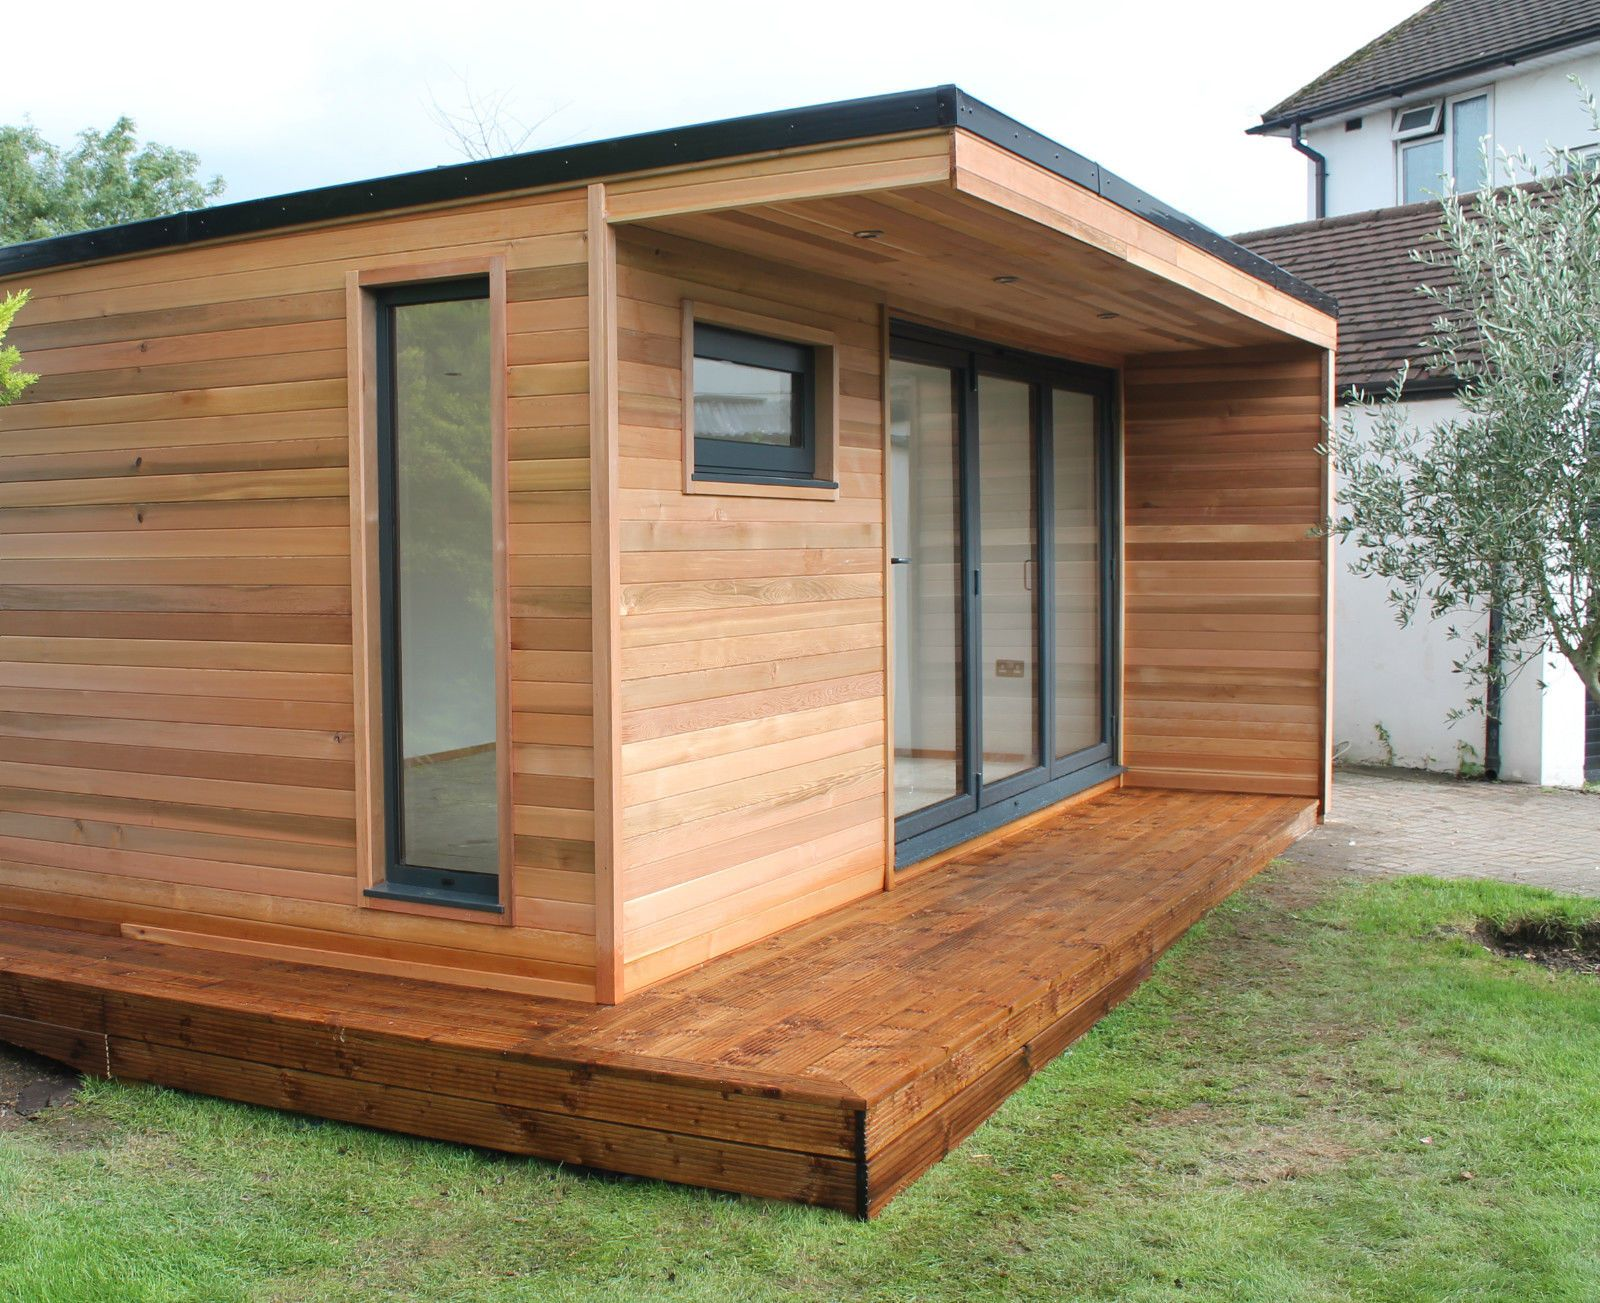 home office garden building. 5m X 3m Garden Room / Home Office Studio Summer House Log Cabin Chalet Building